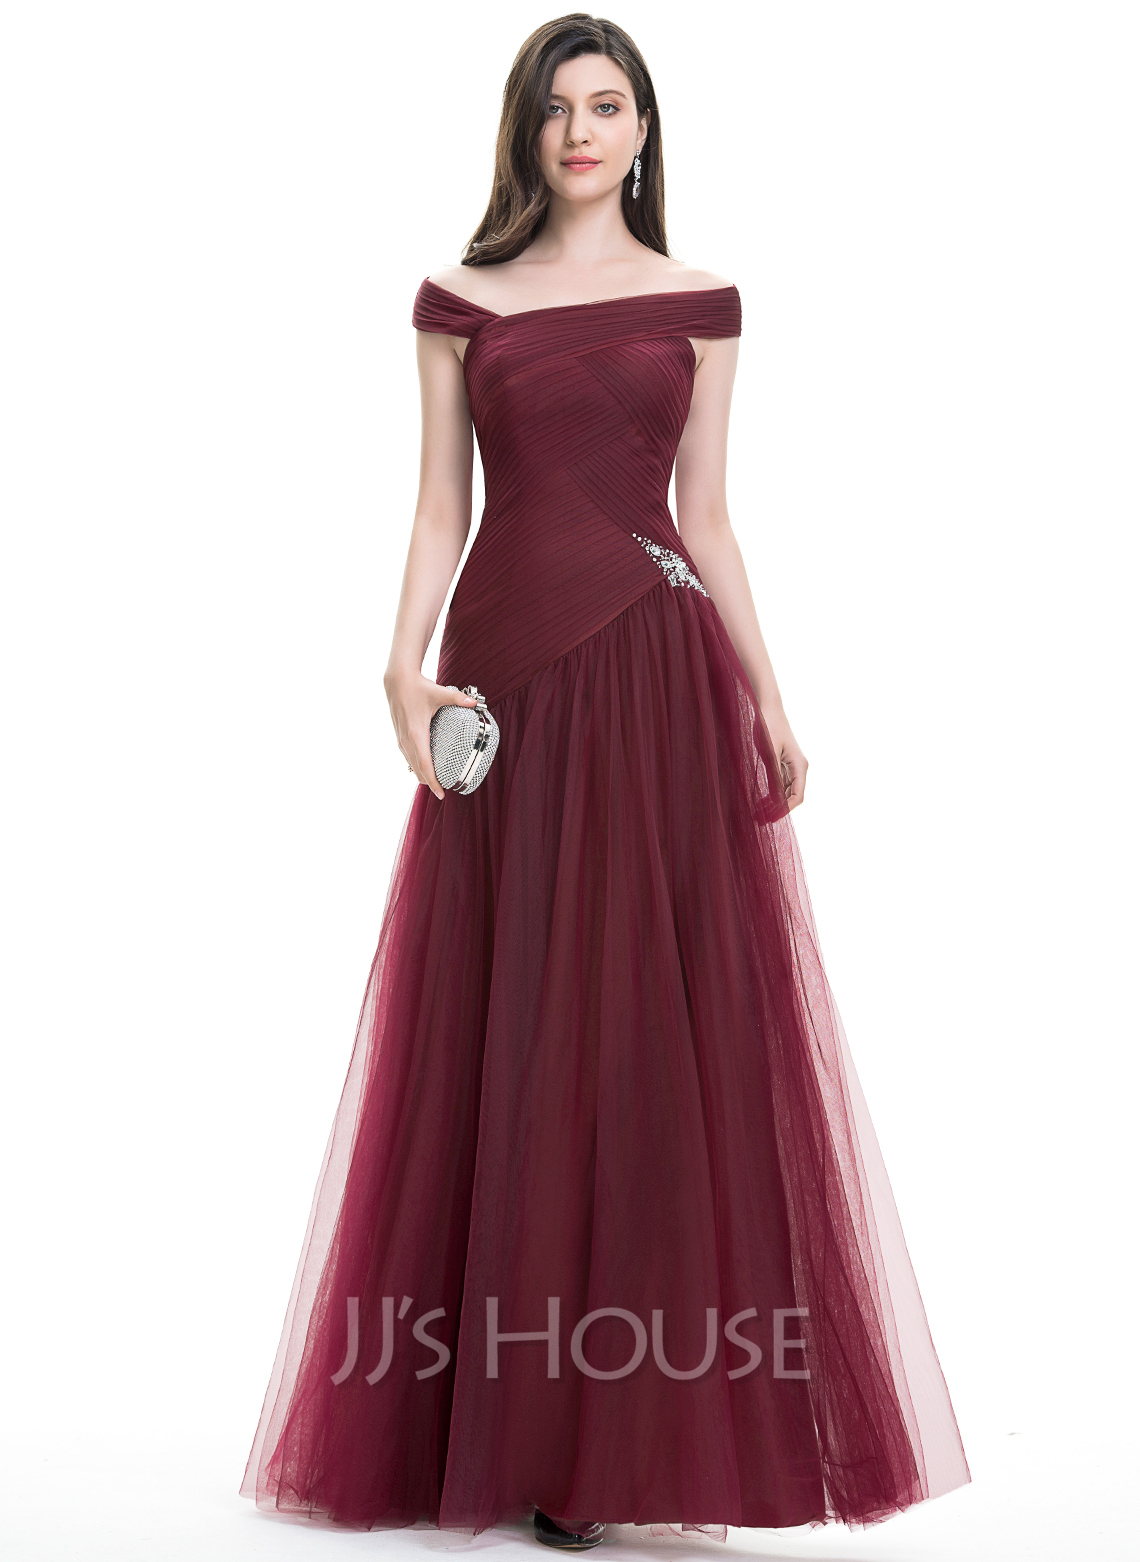 A-Line/Princess Off-the-Shoulder Floor-Length Tulle Prom Dresses With Ruffle Beading Sequins